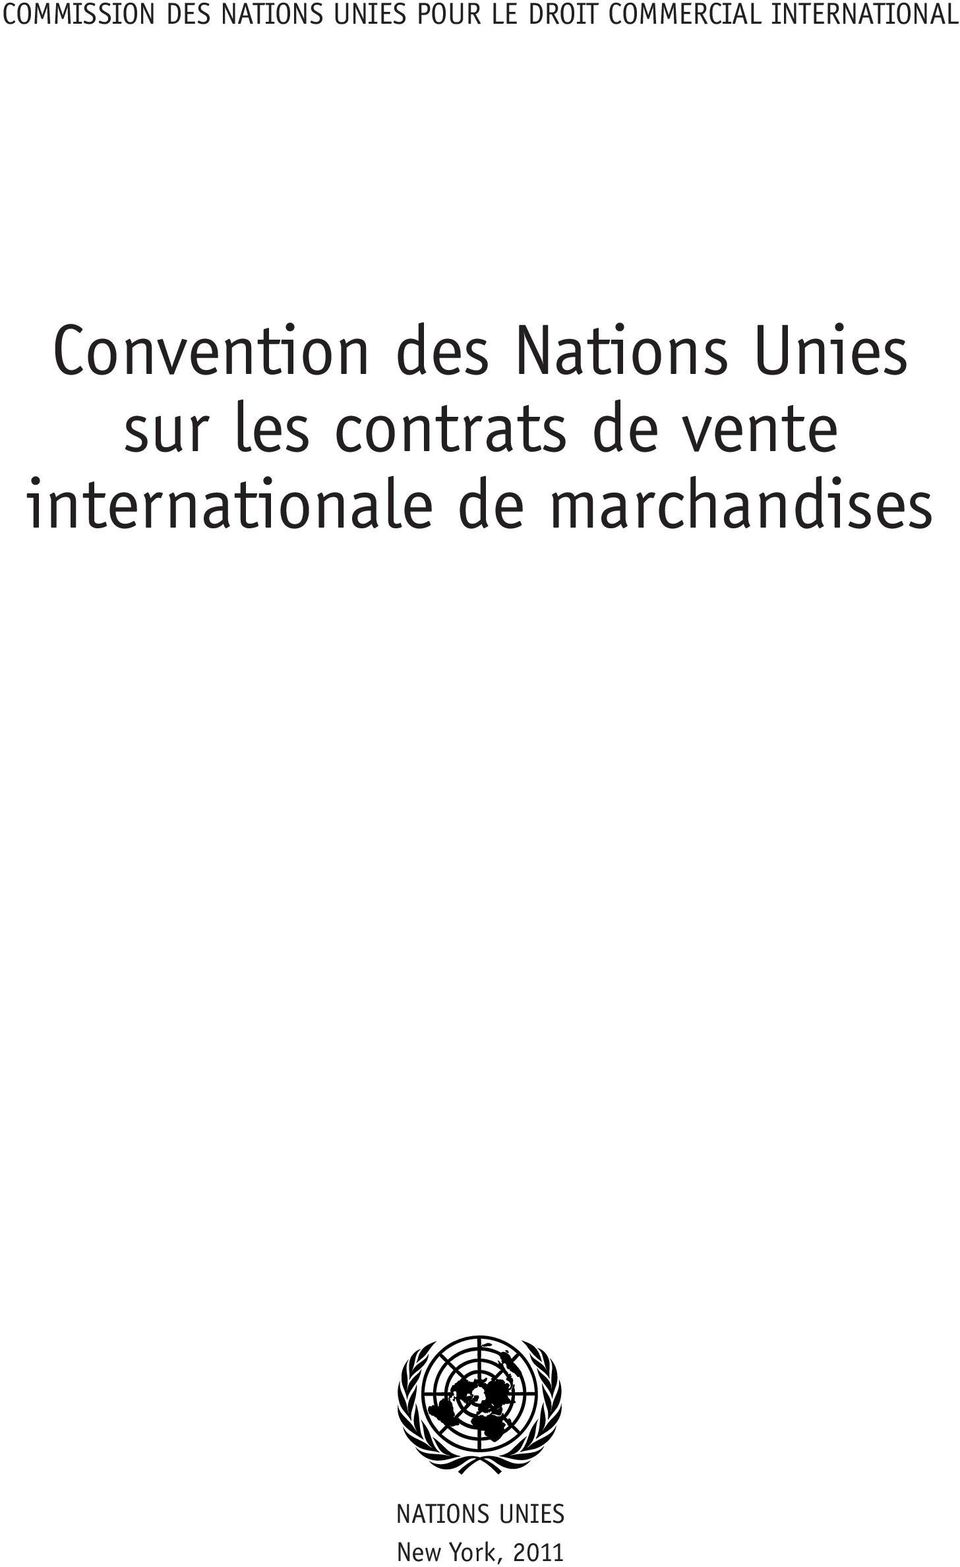 Nations Unies sur les contrats de vente